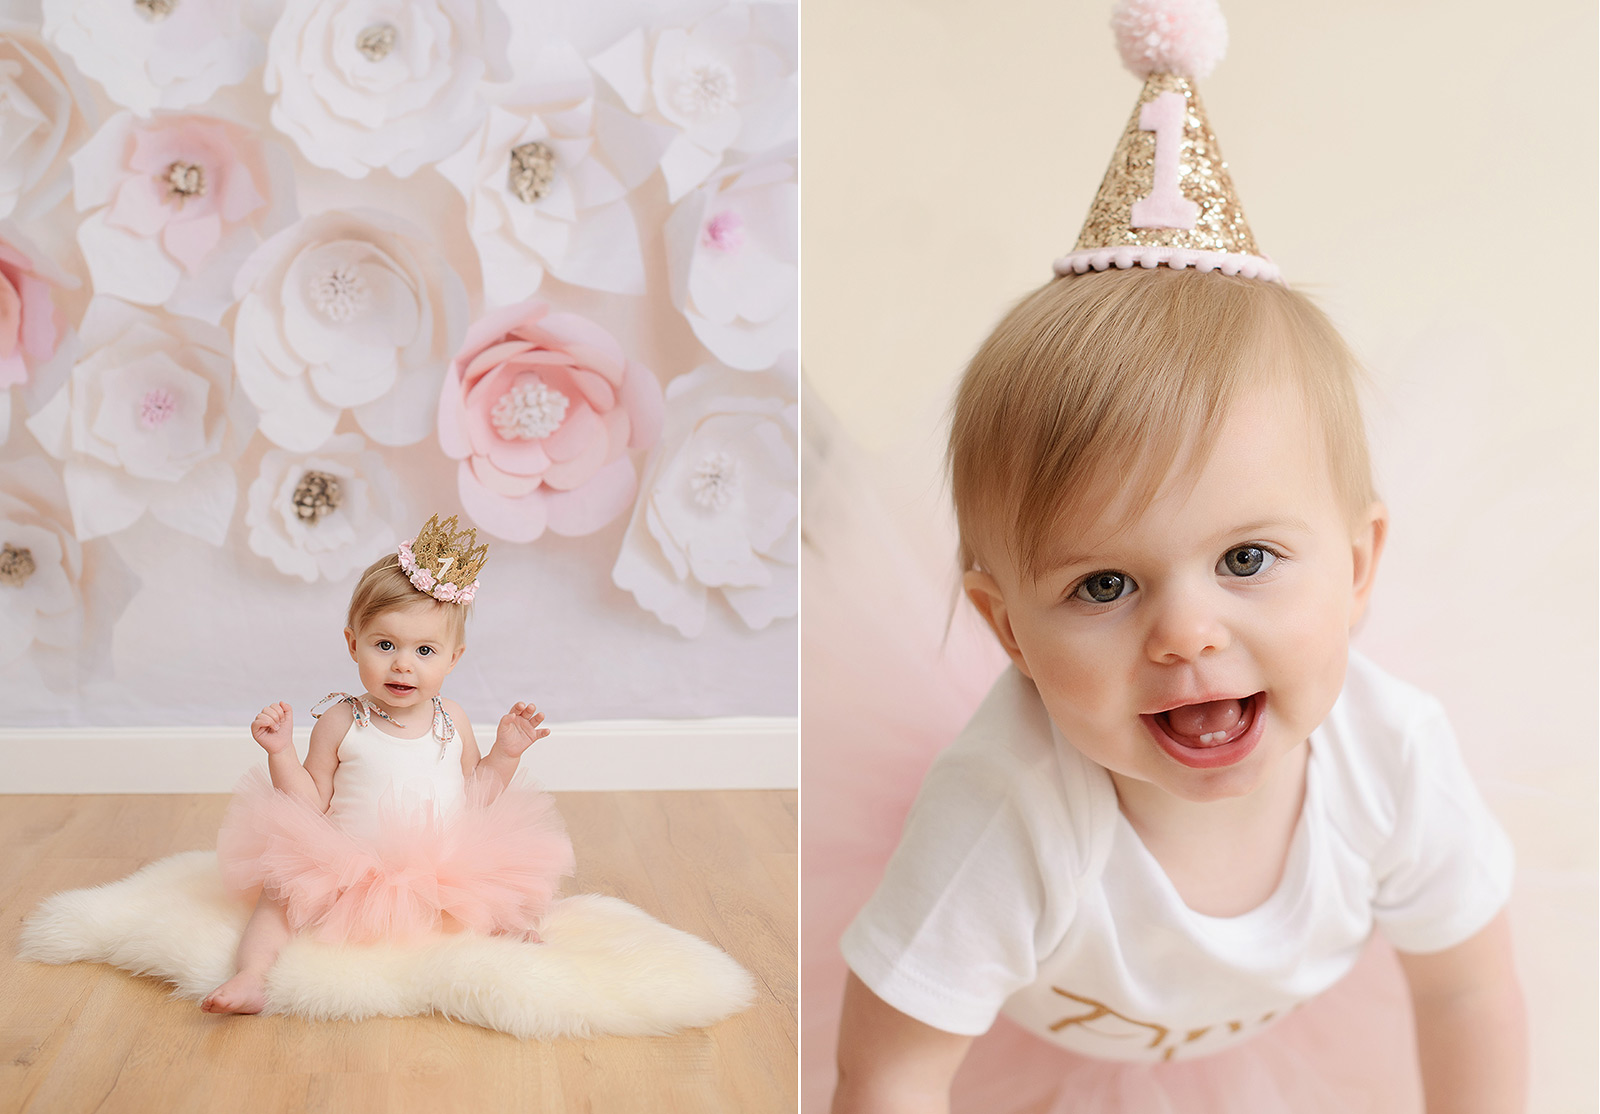 One year old baby girl in pink tutu smiling against paper flowers